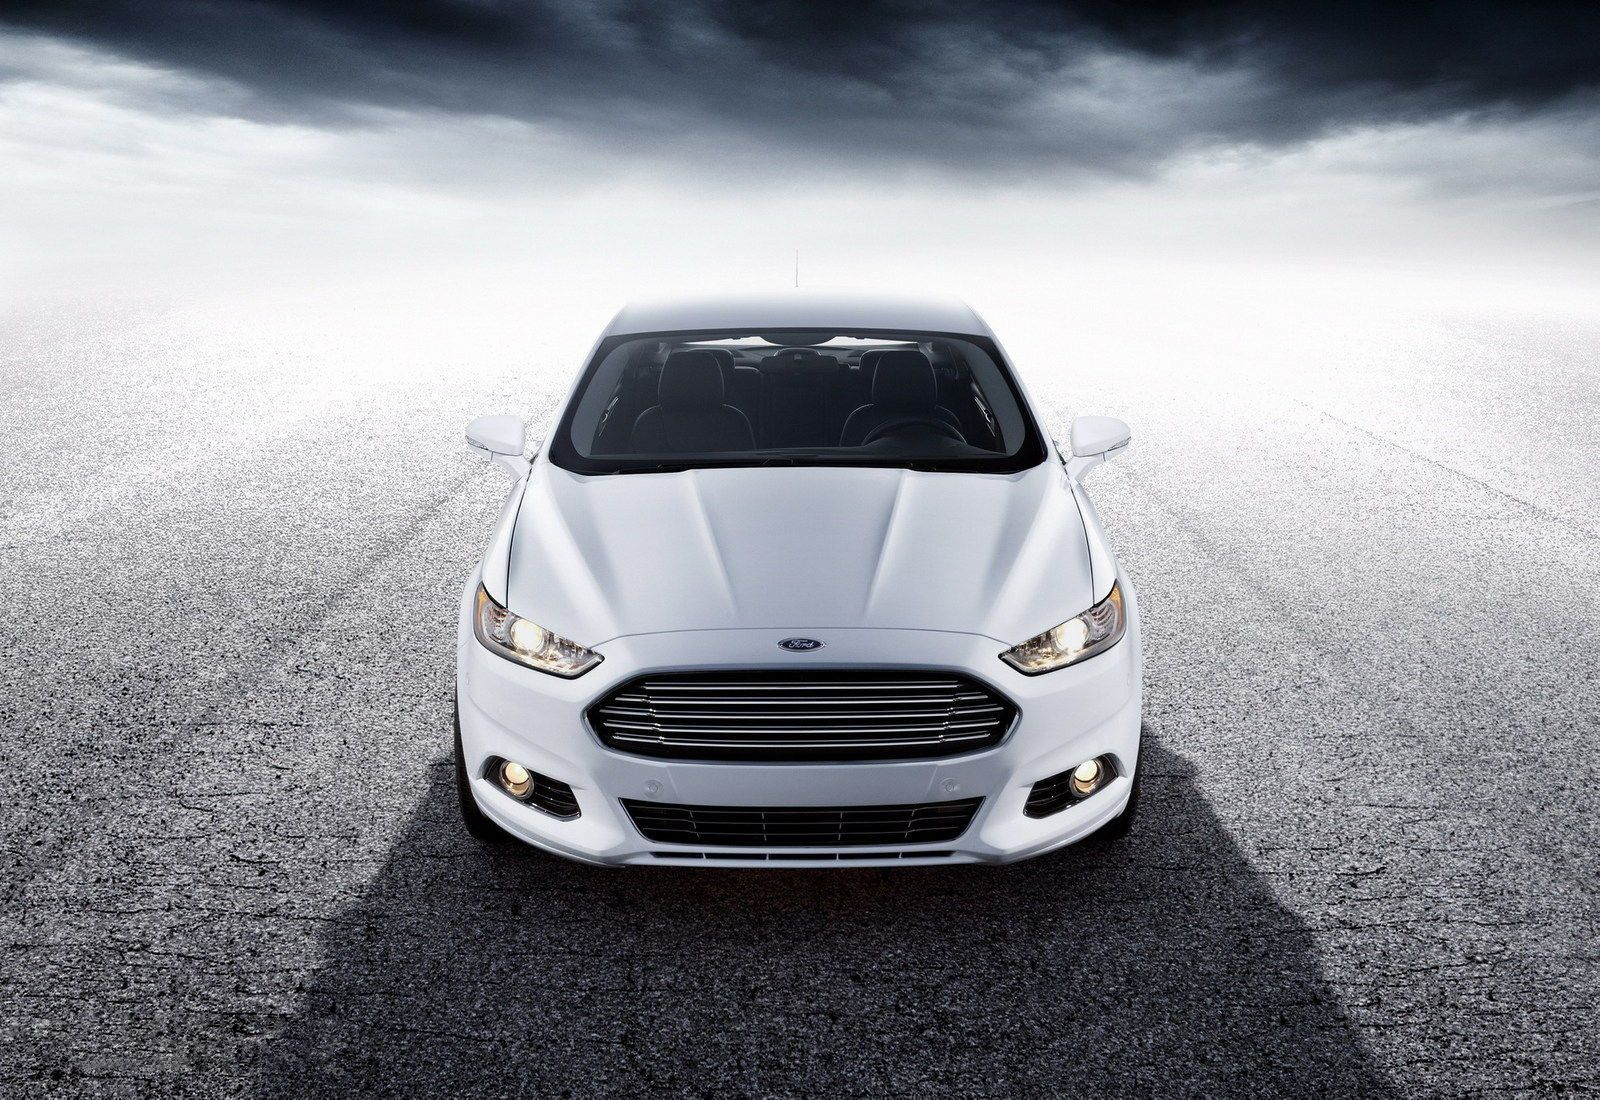 Ford Fusion Hd Wallpapers Http Www Firsthdwallpapers Com Ford